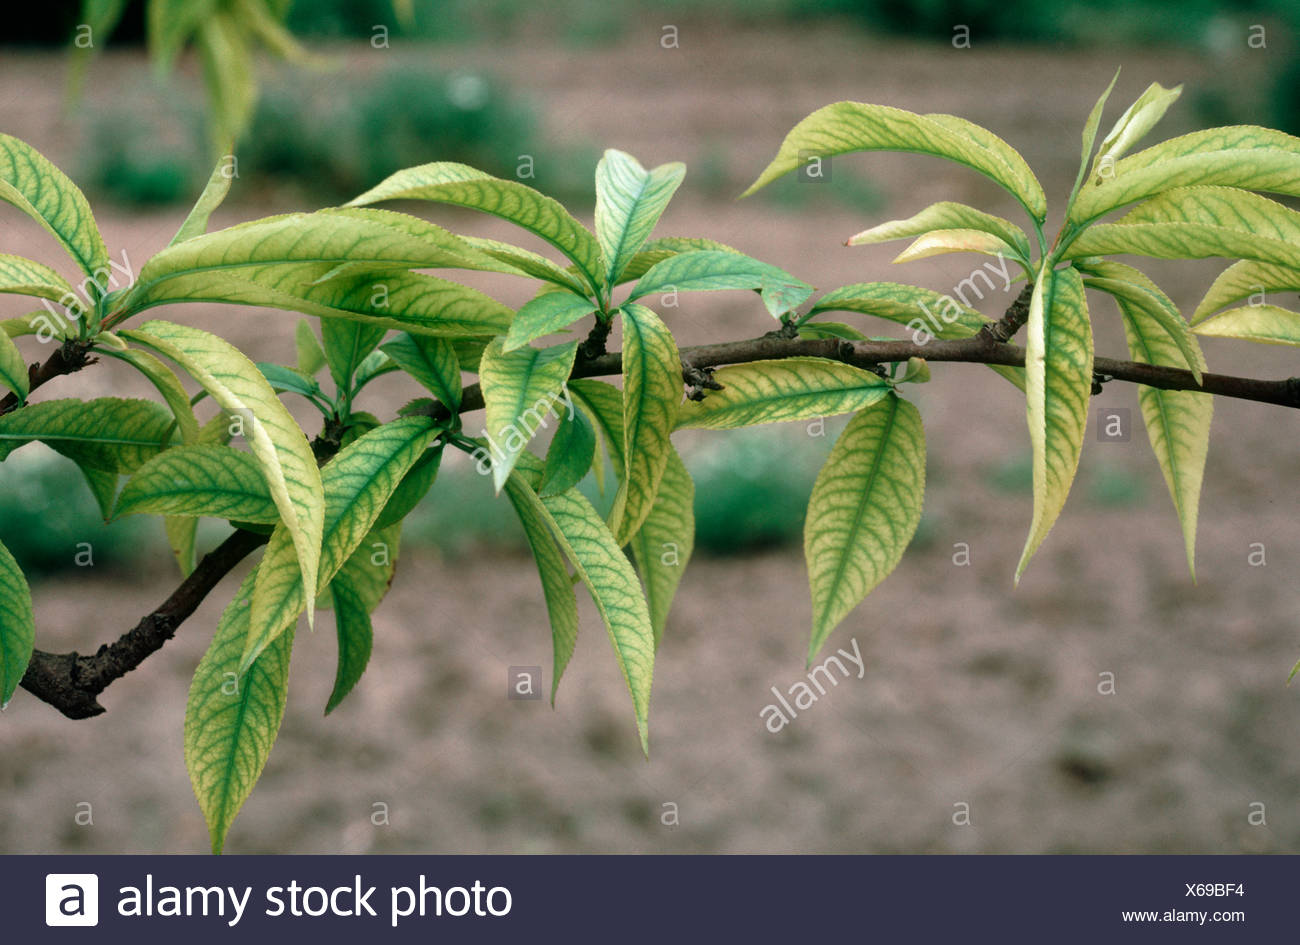 Iron deficiency symptoms on peach leaf and branch - Stock Image